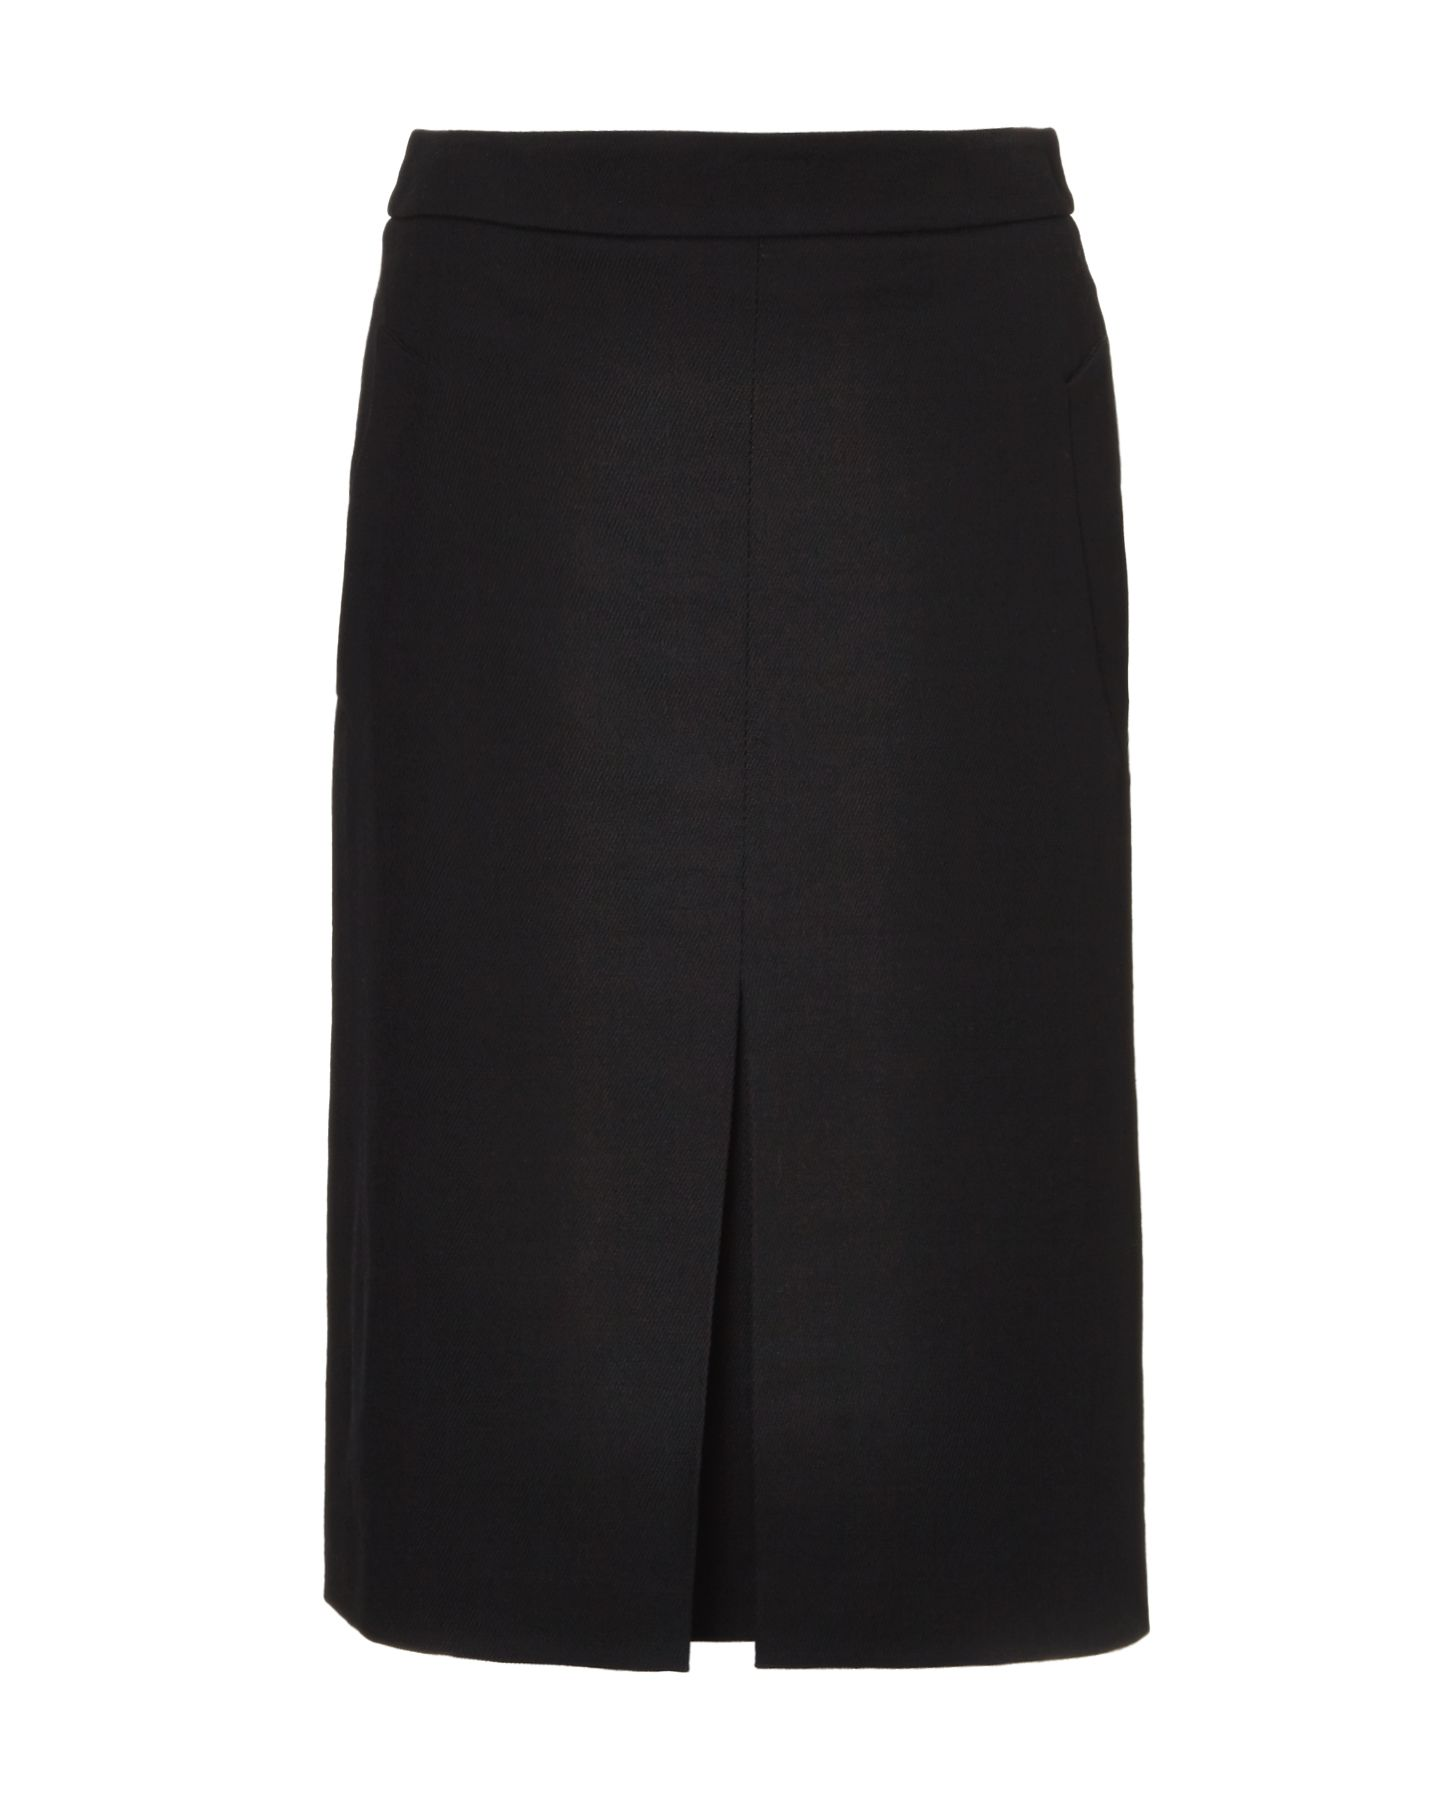 Pleat front skirt